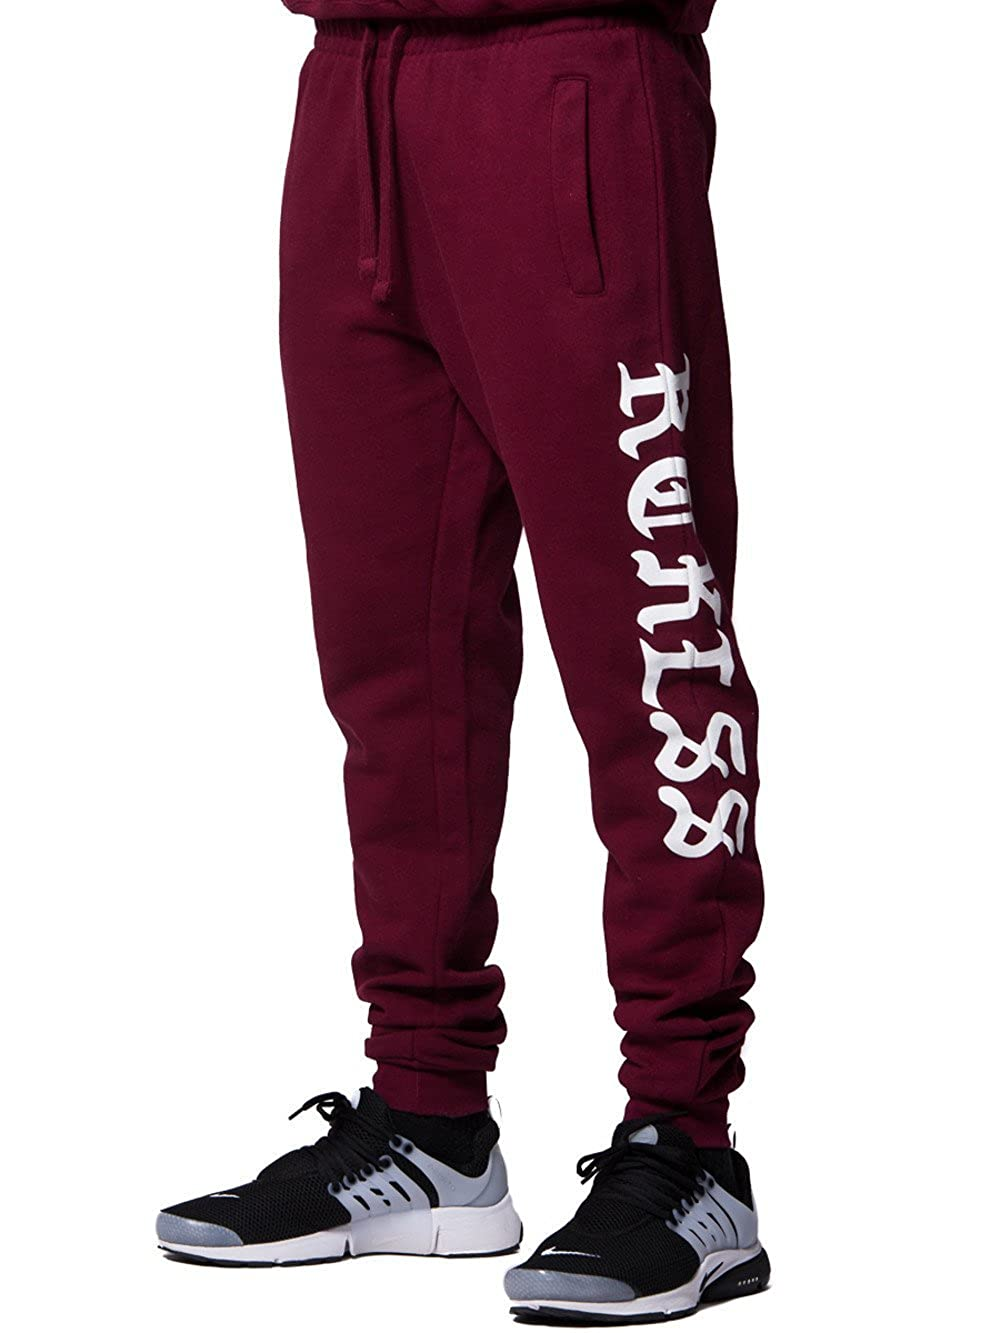 Young & Reckless - Anglian Sweatpants- Burgundy - - Mens - Bottoms - Sweatpants - Young and Reckless 11080059791